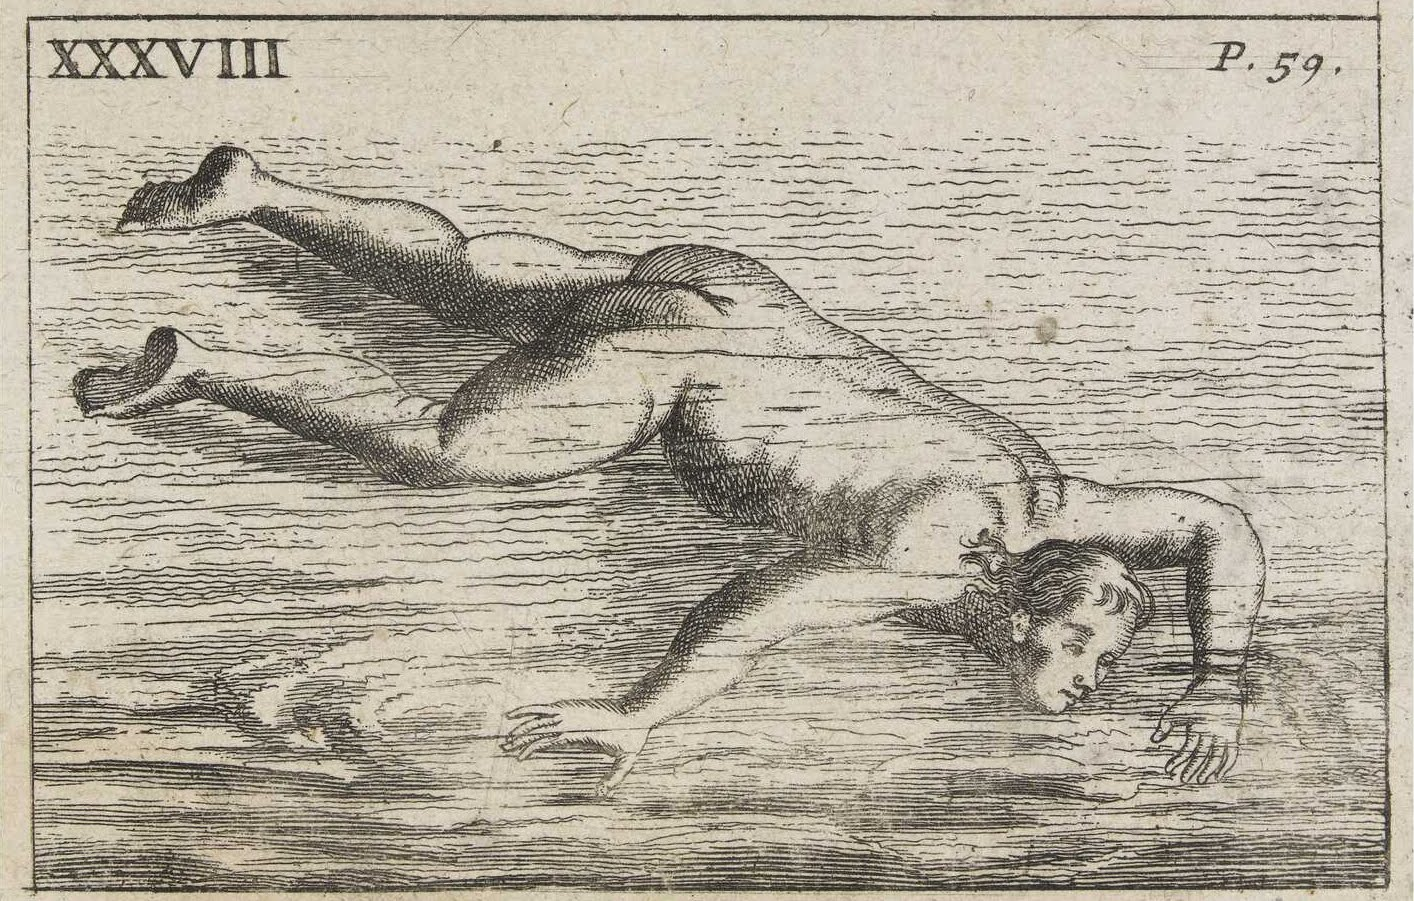 odd sketch of swimming style - 1700s